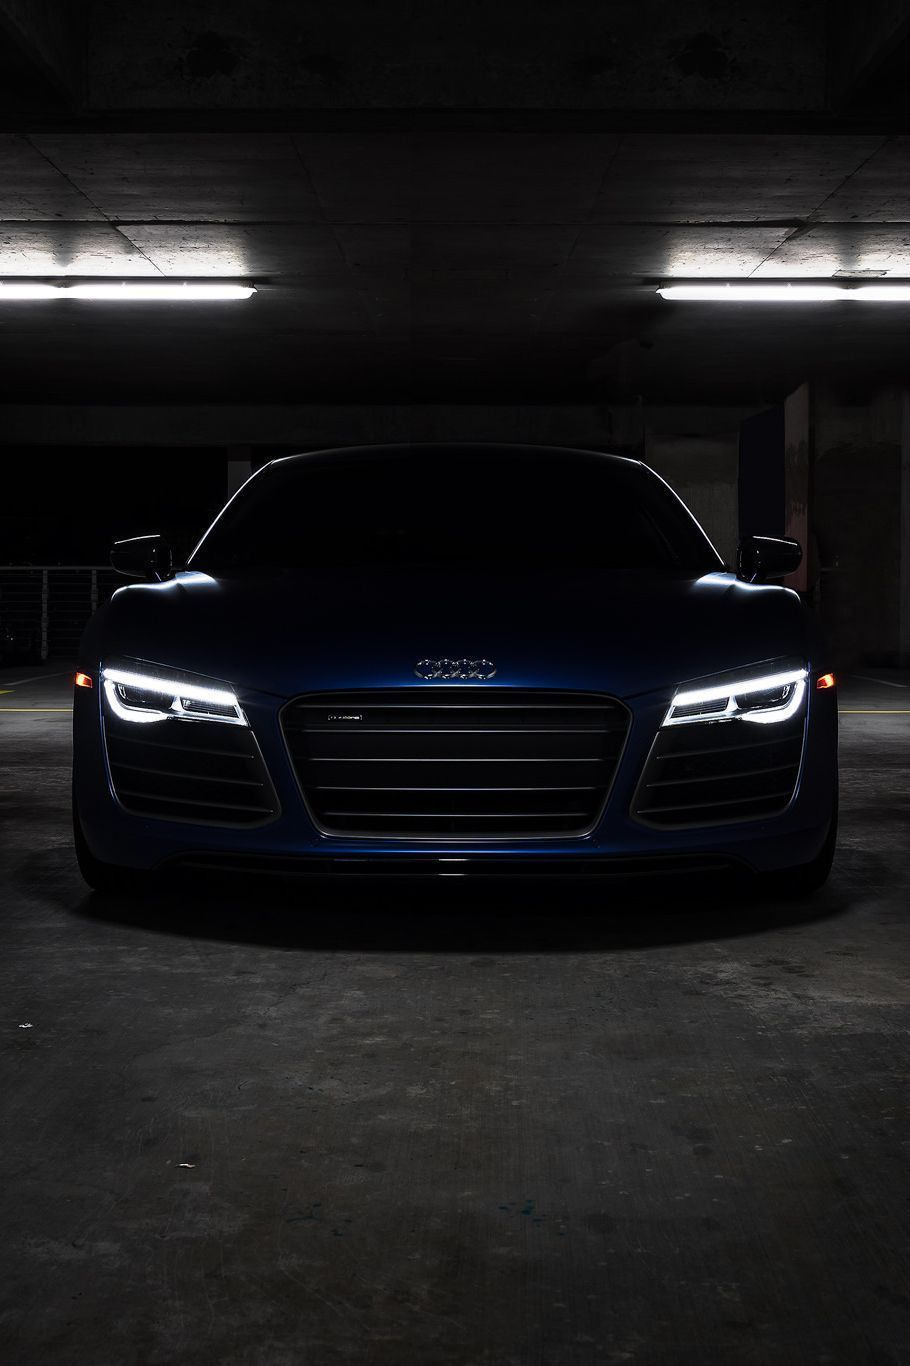 The Most Luxury Cars In The World With Best Photos Of Cars Expensive Cars Audi R8 V10 Plus Audi R8 V10 Audi R8 Wallpaper